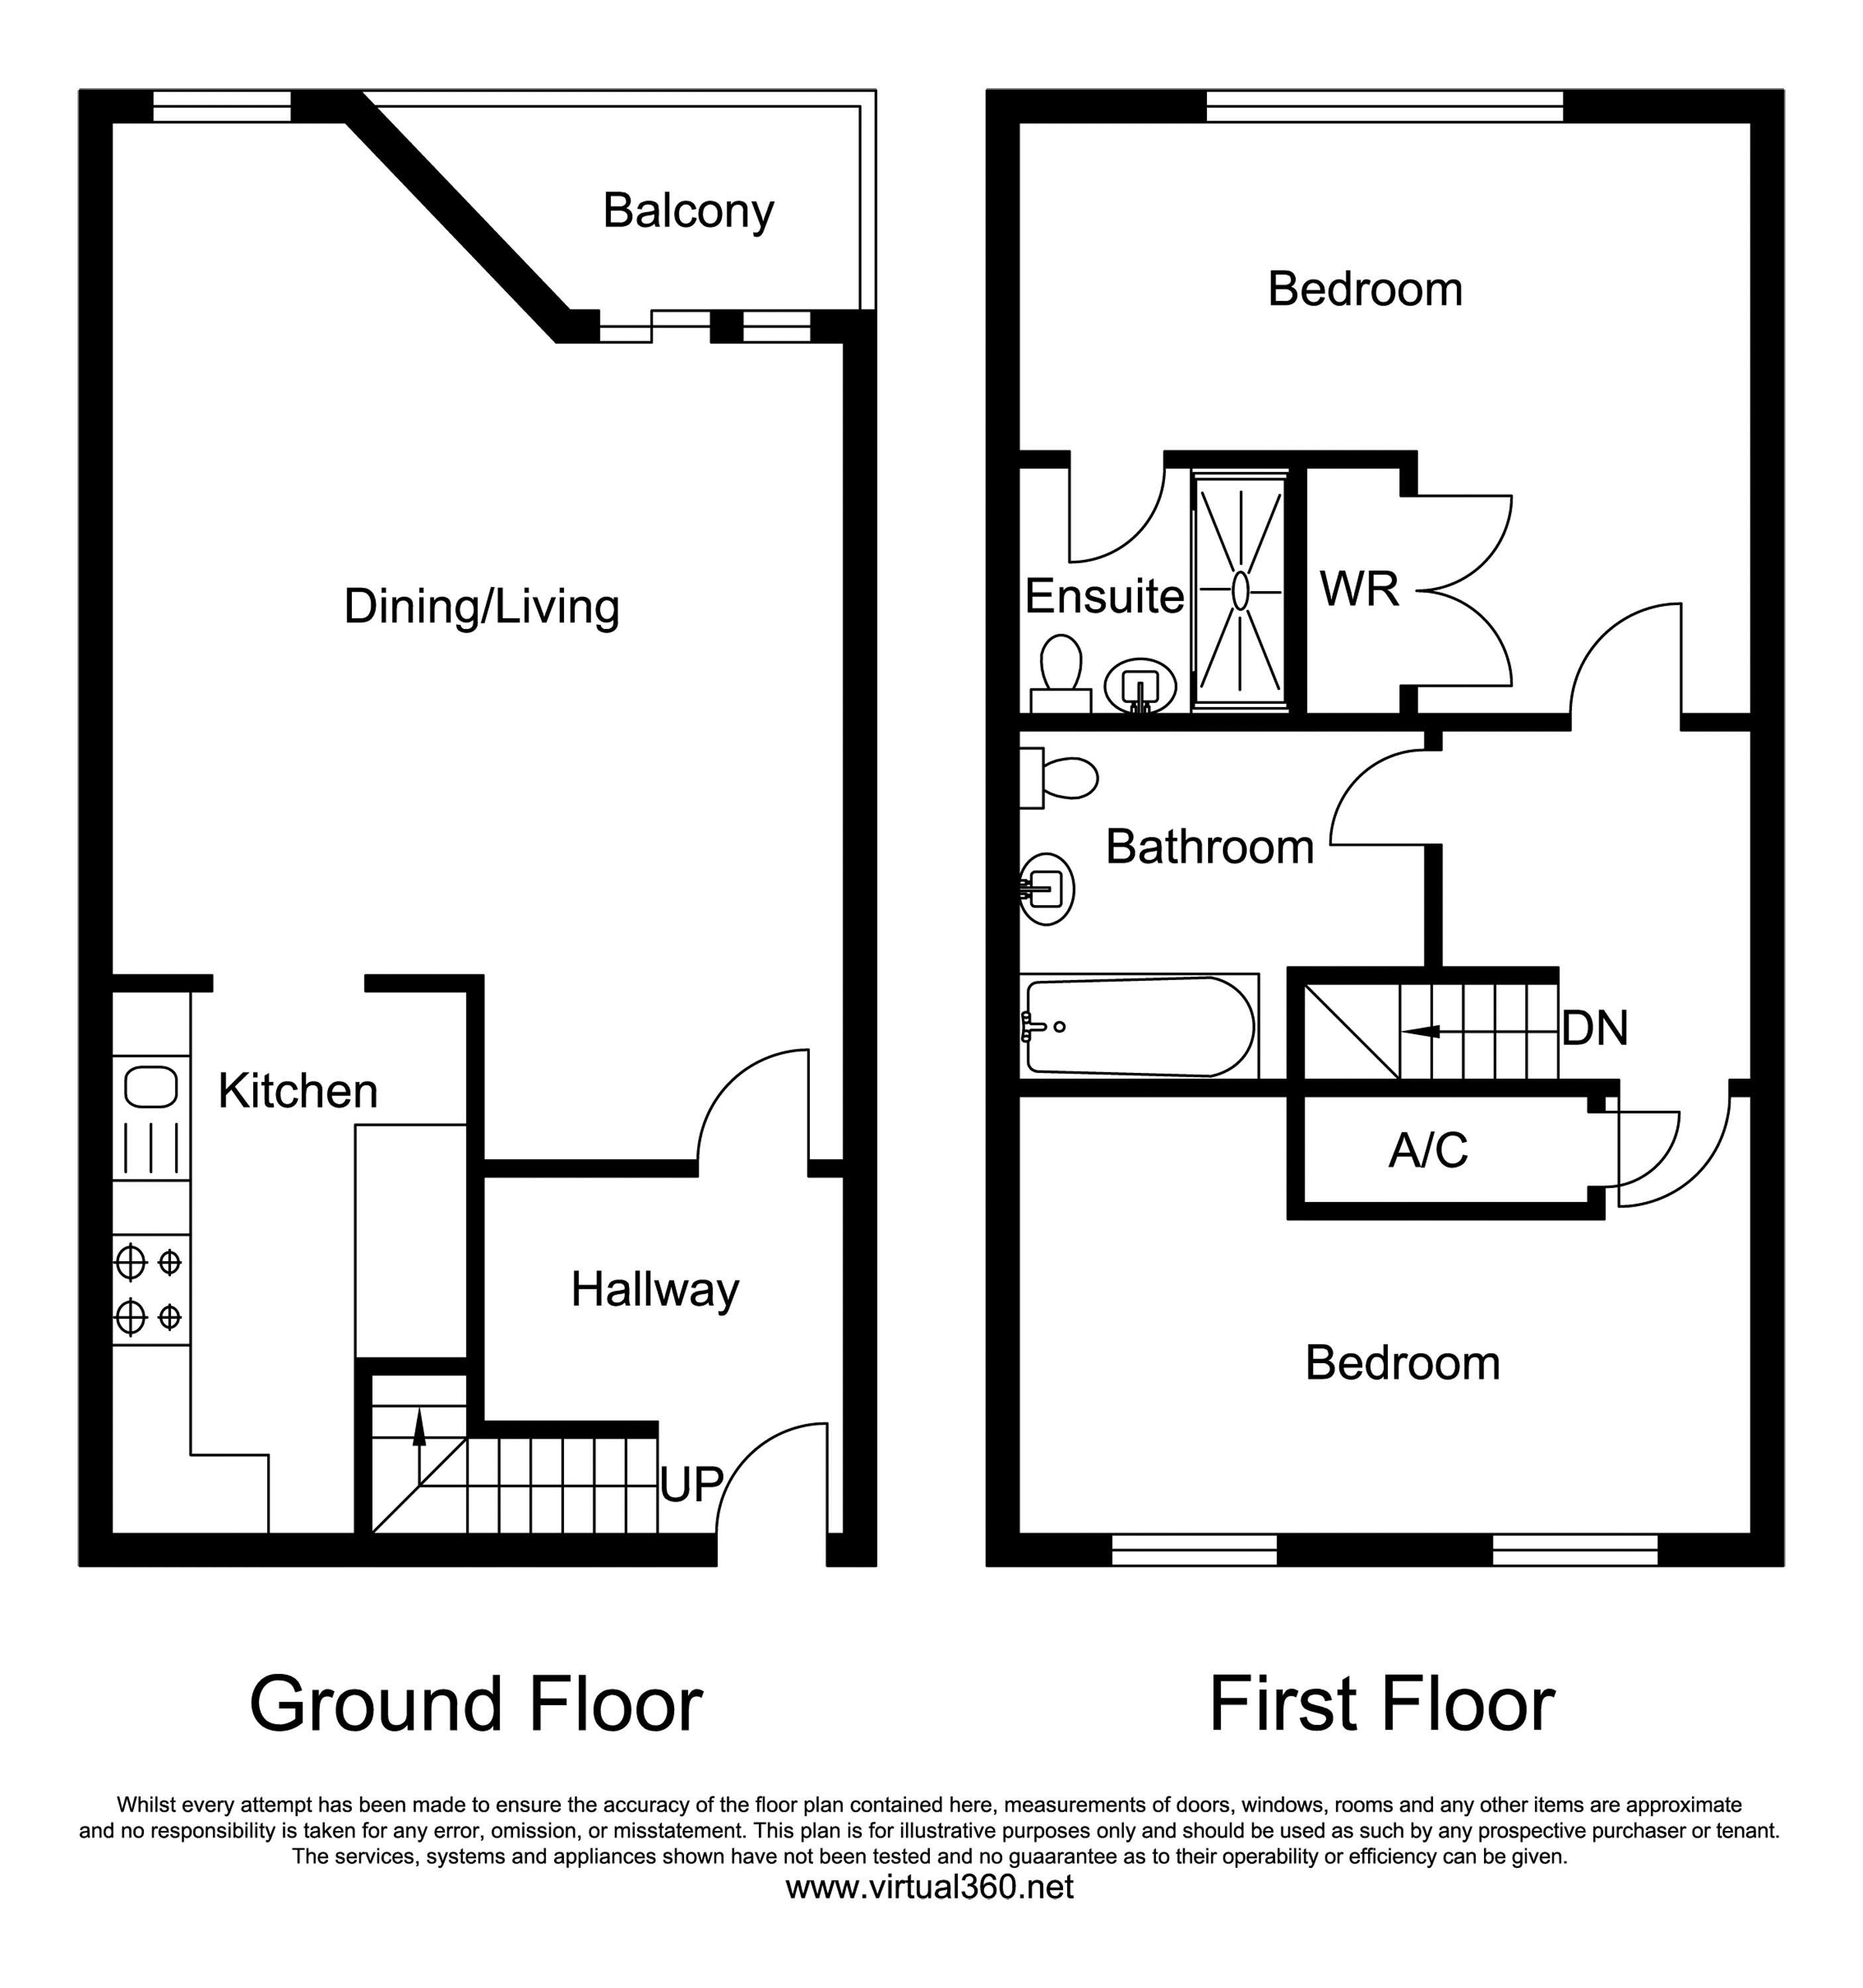 Madison Apartments, Seymour Grove, Manchester floor plan